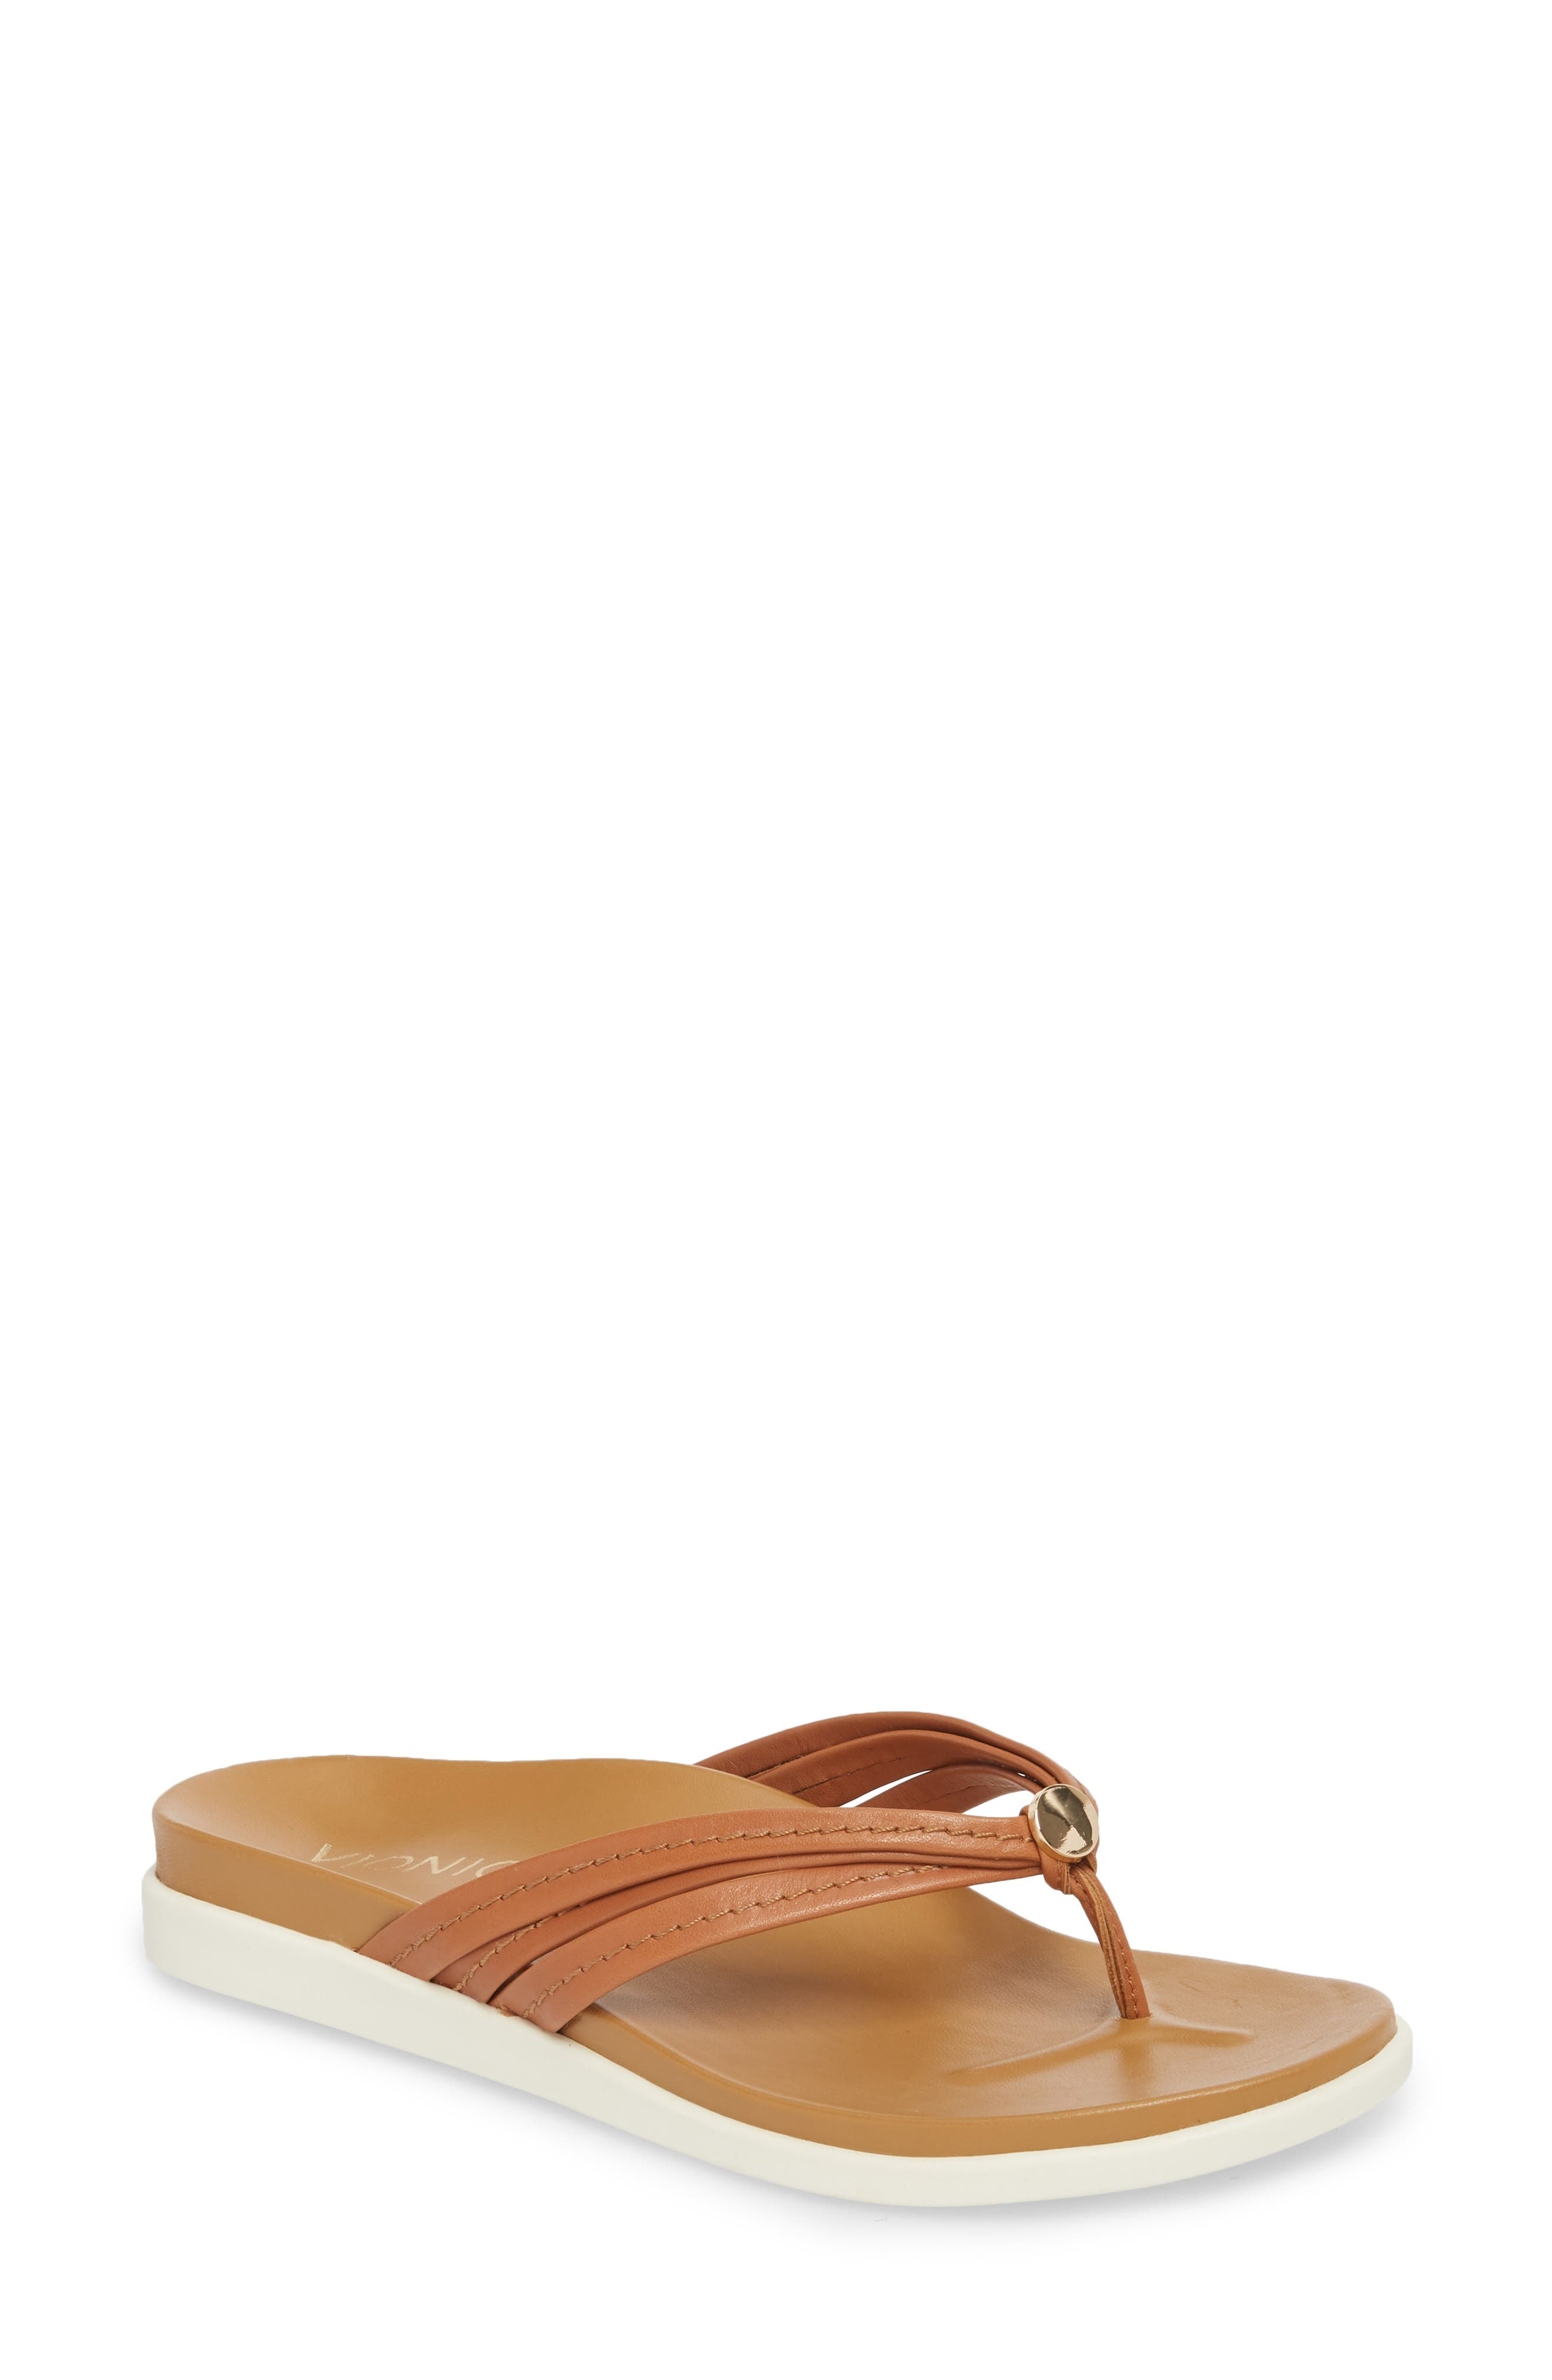 Catalina Flip Flop,                         Main,                         color, Tan Leather